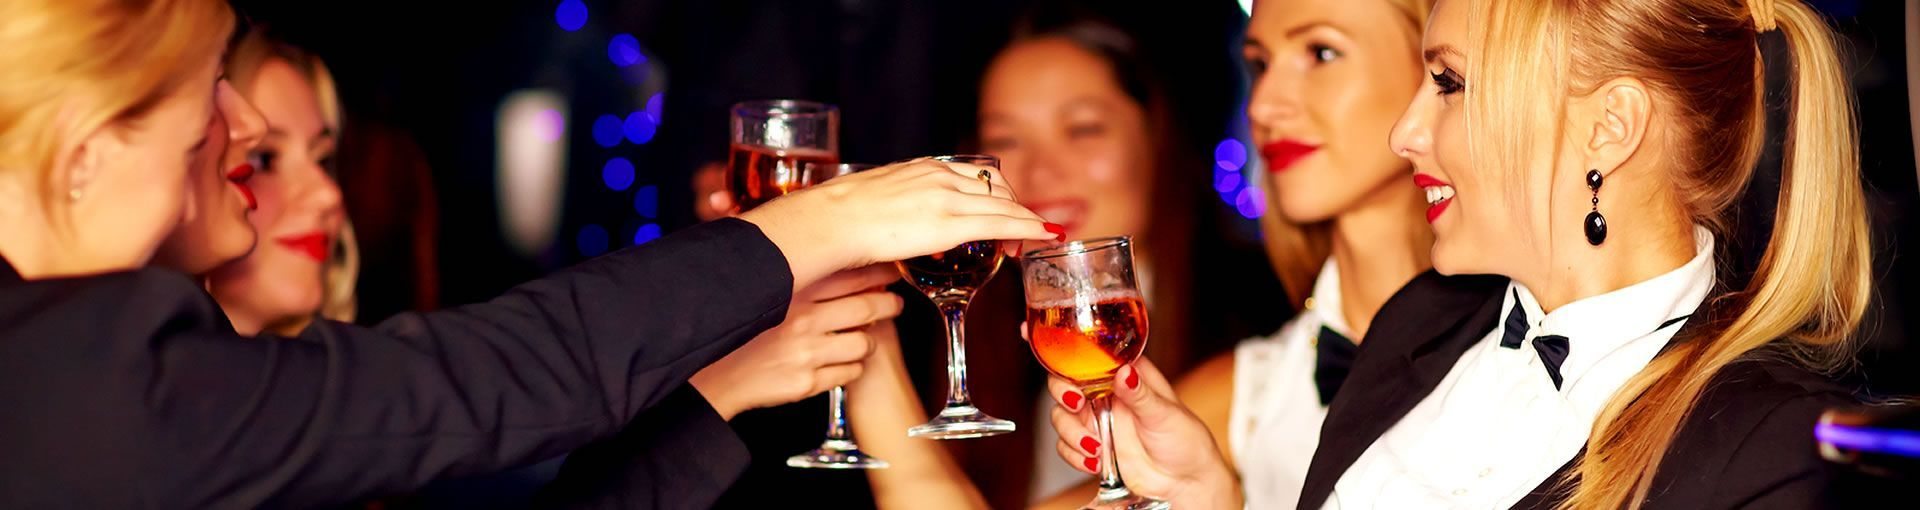 Party Speciais Miami Bachelor/Bachelorette Parties